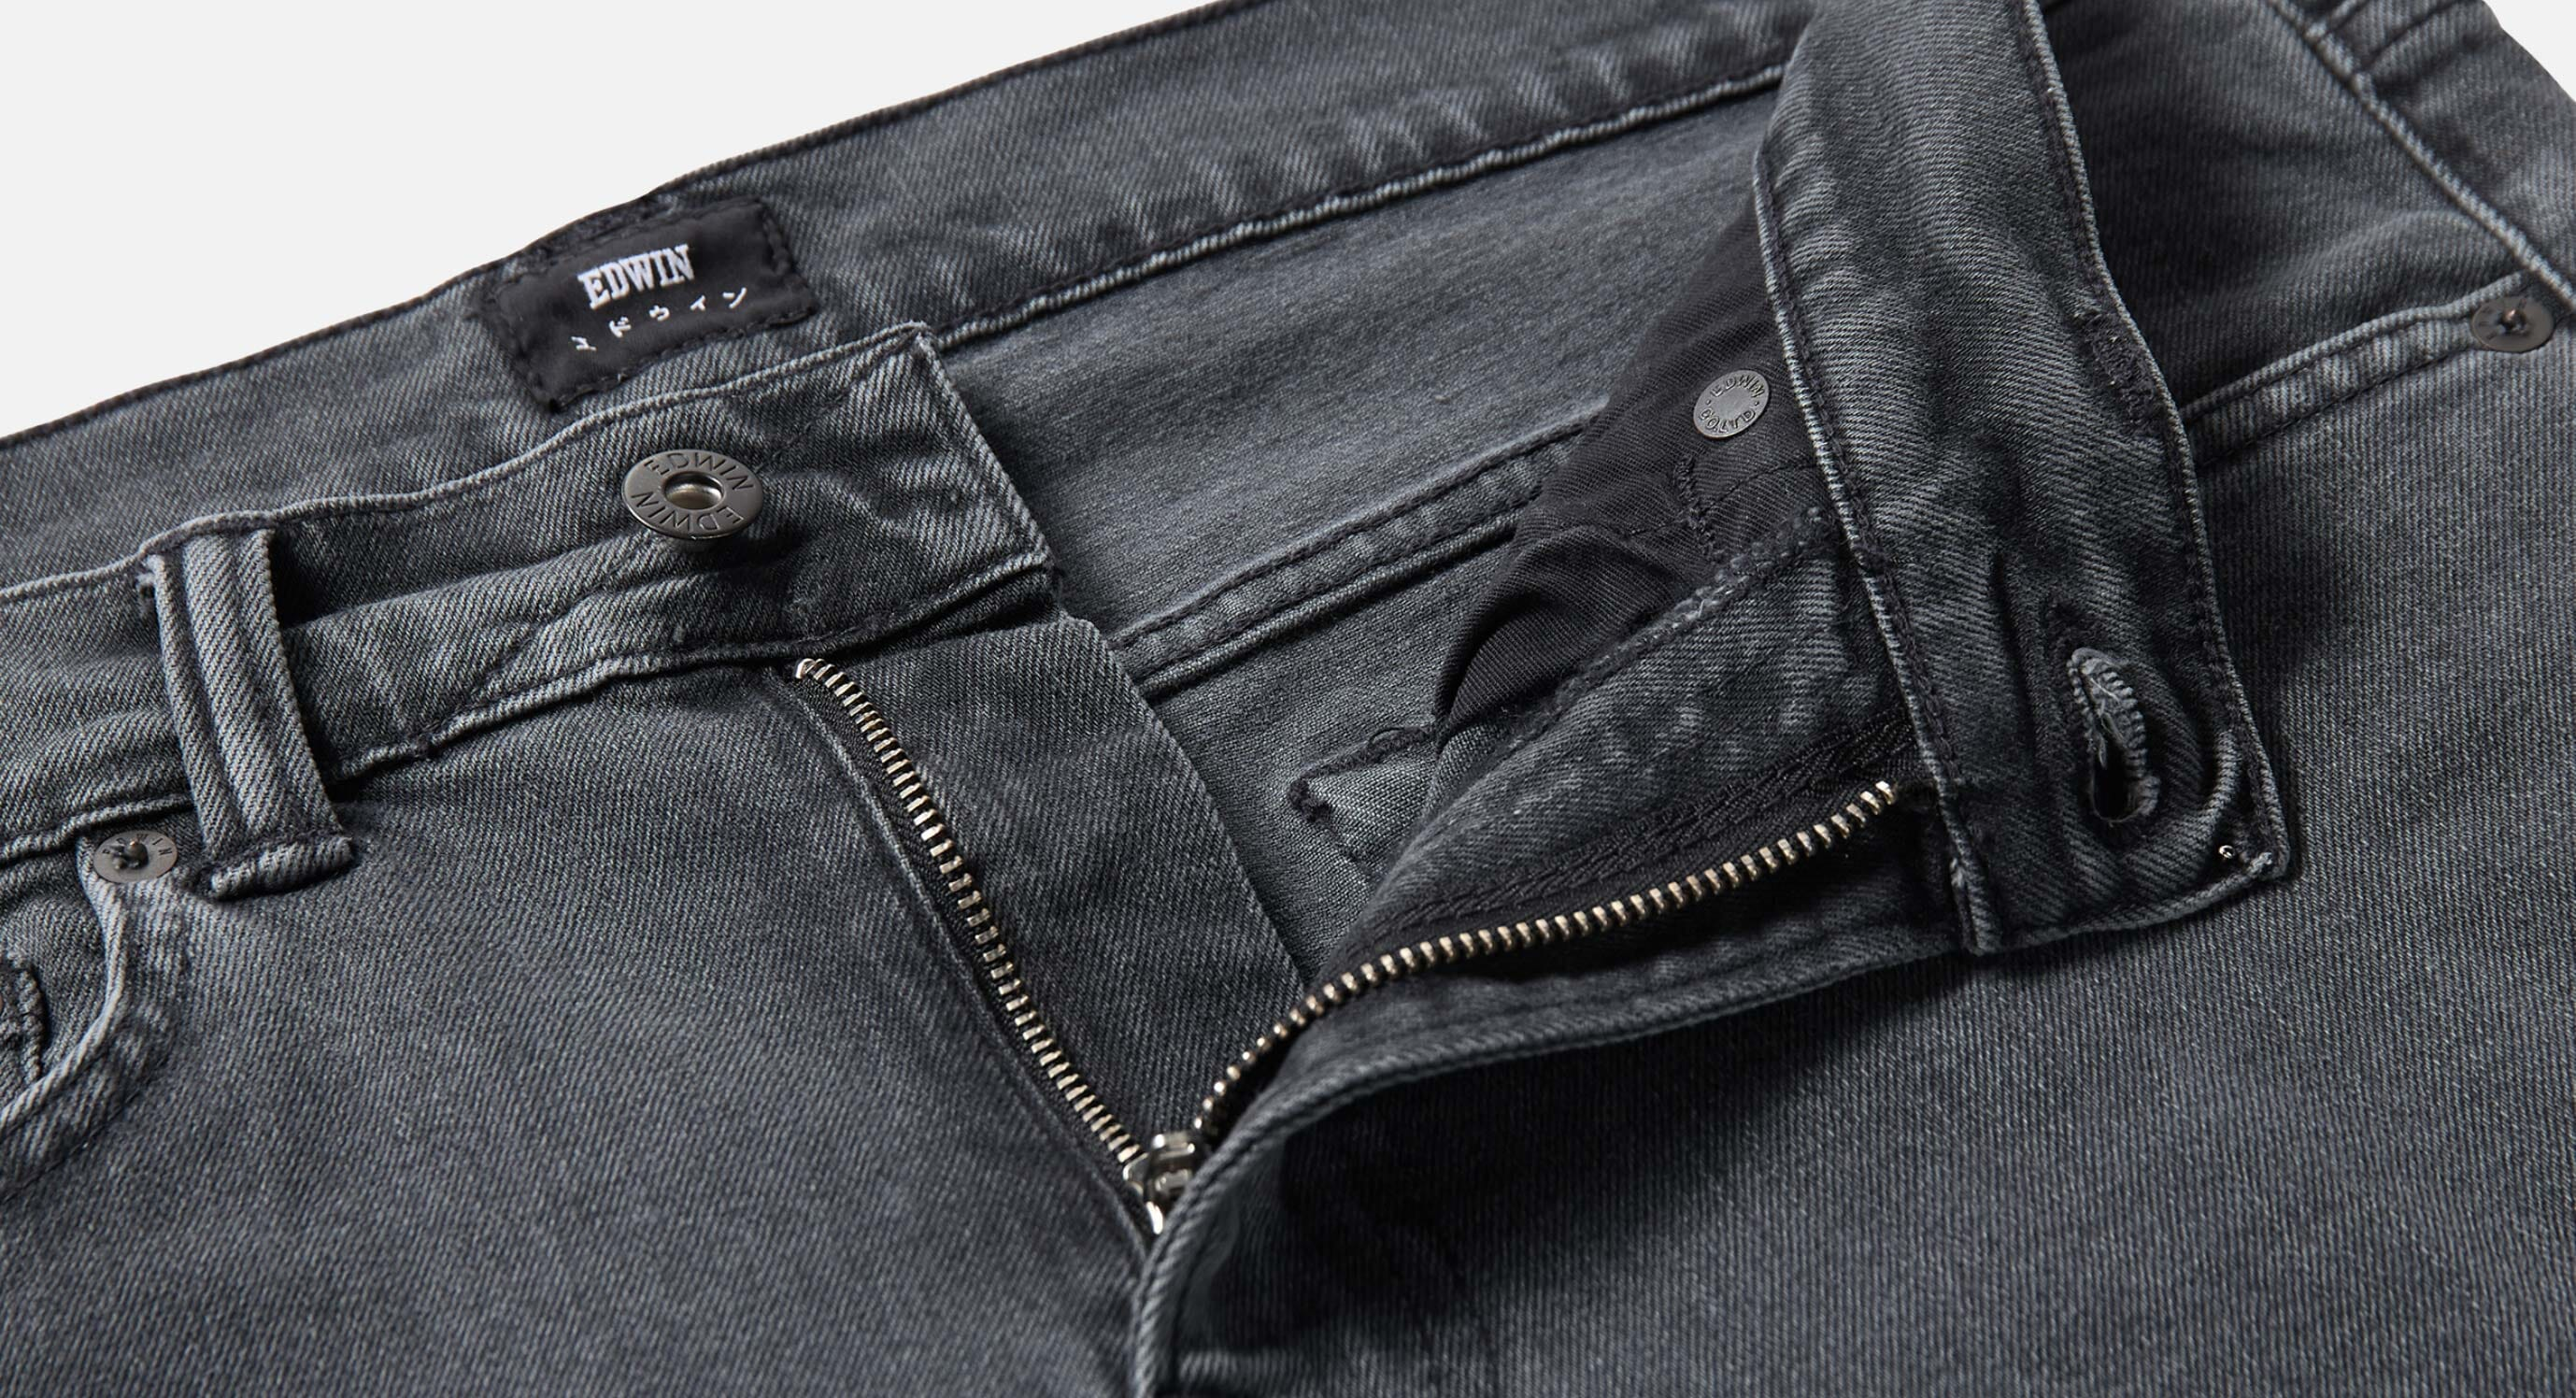 The Edwin Jeans Fit Guide